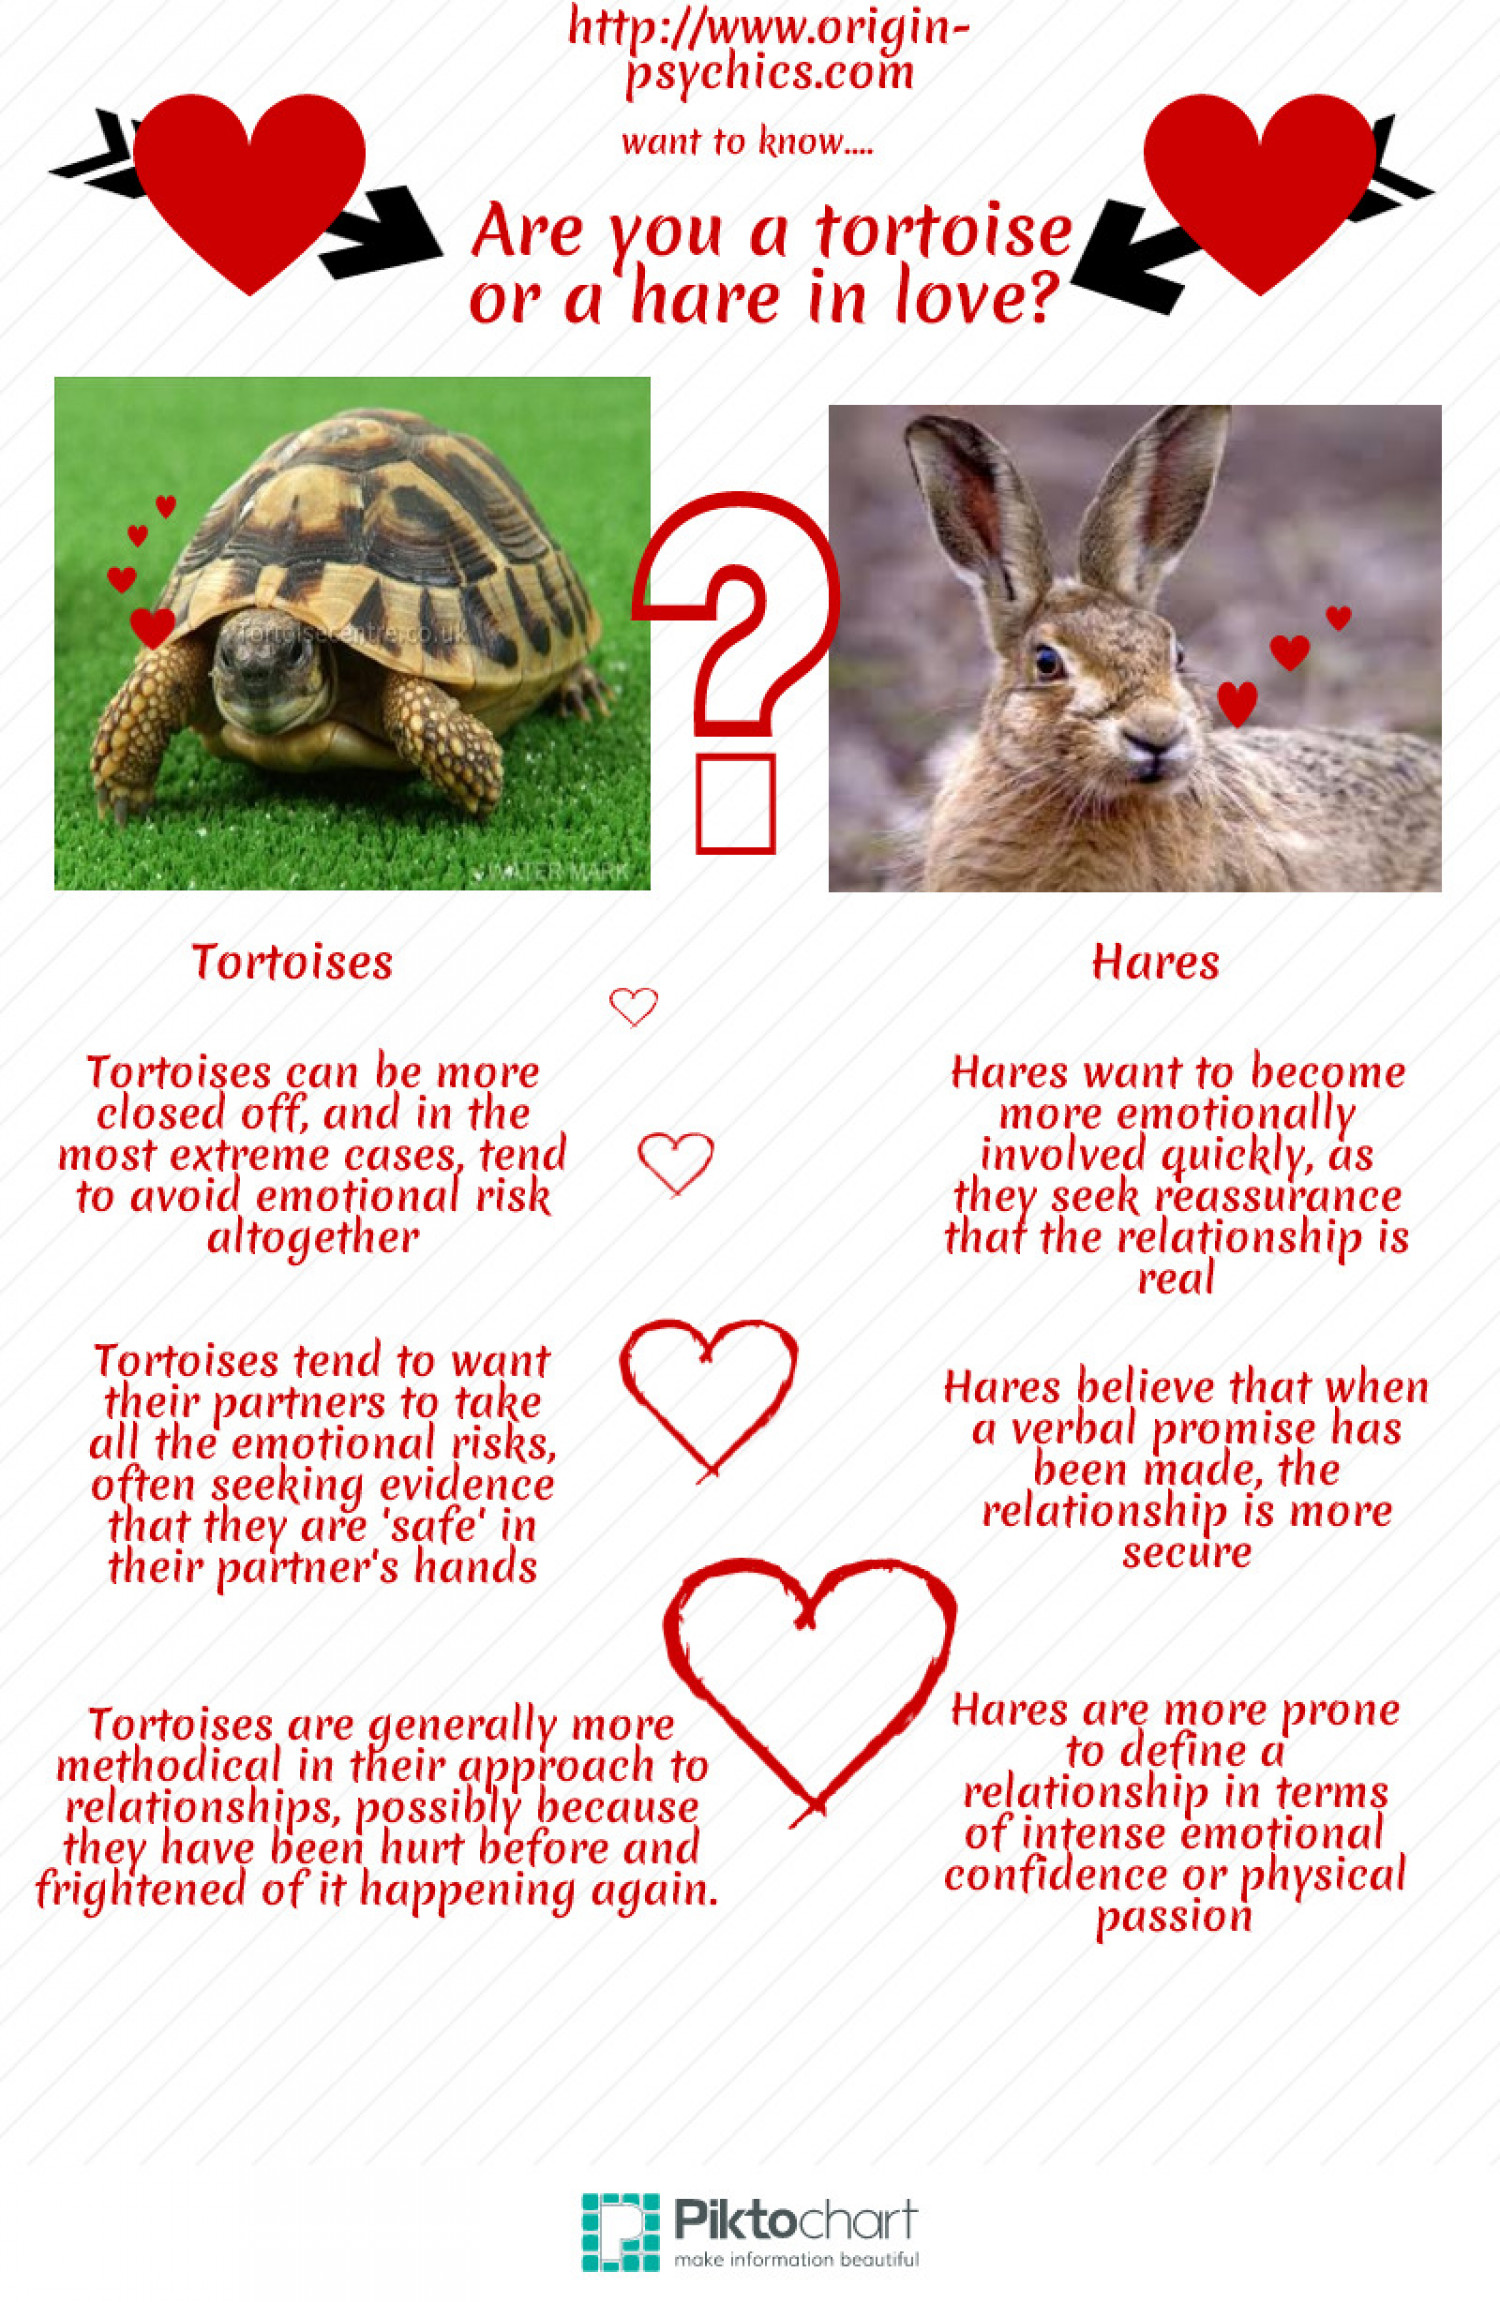 Are You A Tortoise or a Hare In Love? Infographic